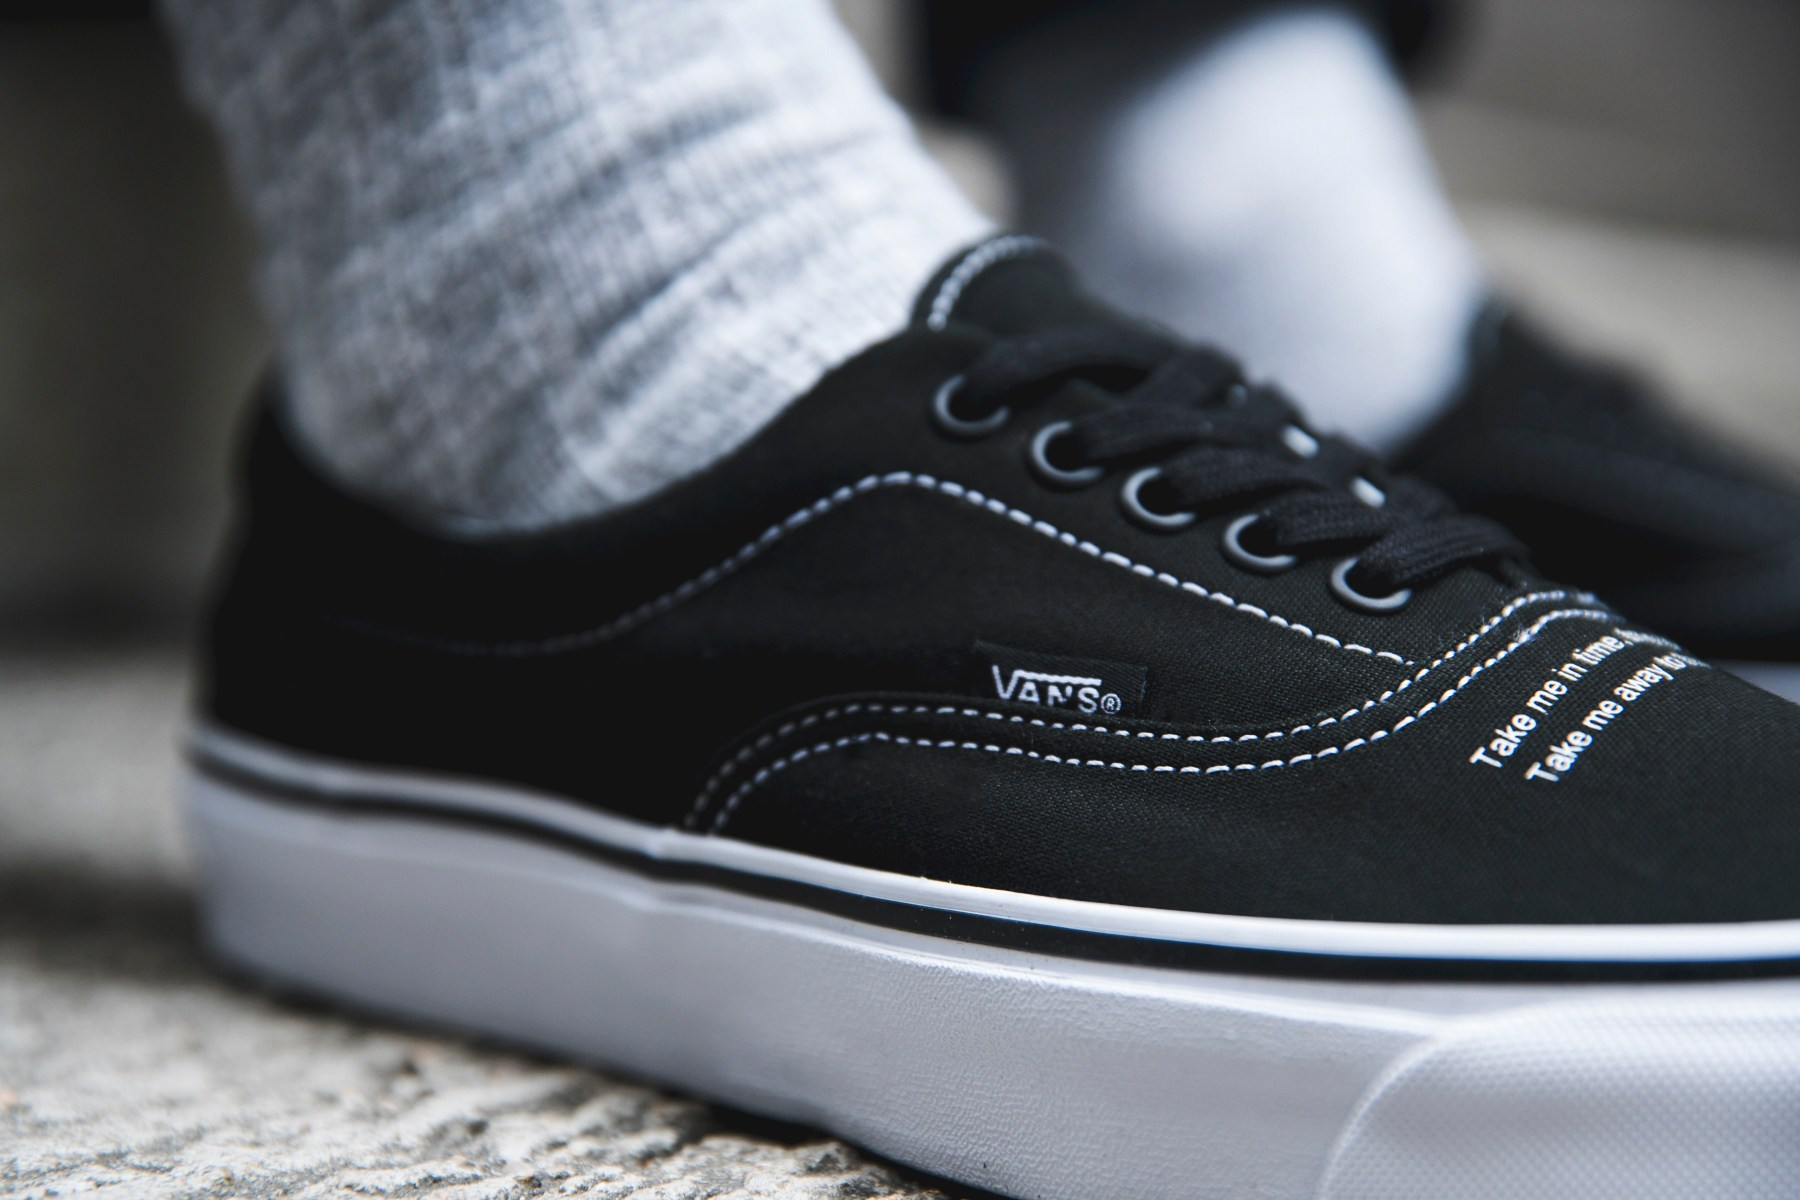 undercover-vans-2017-collaboration-368-011